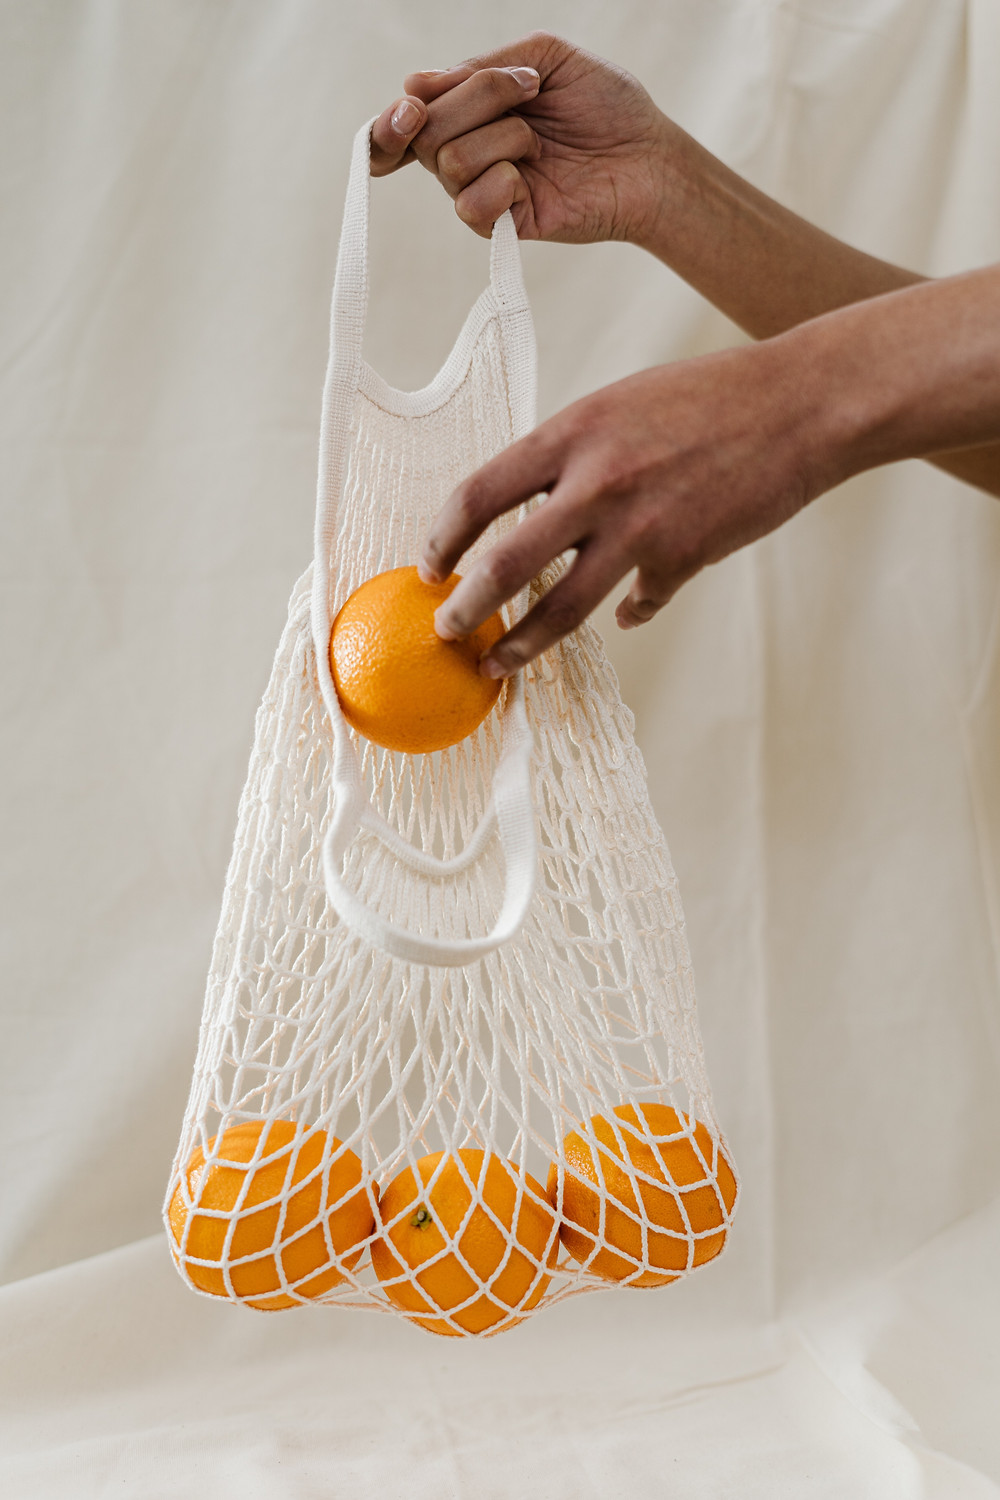 Fruit and veg in a net tote